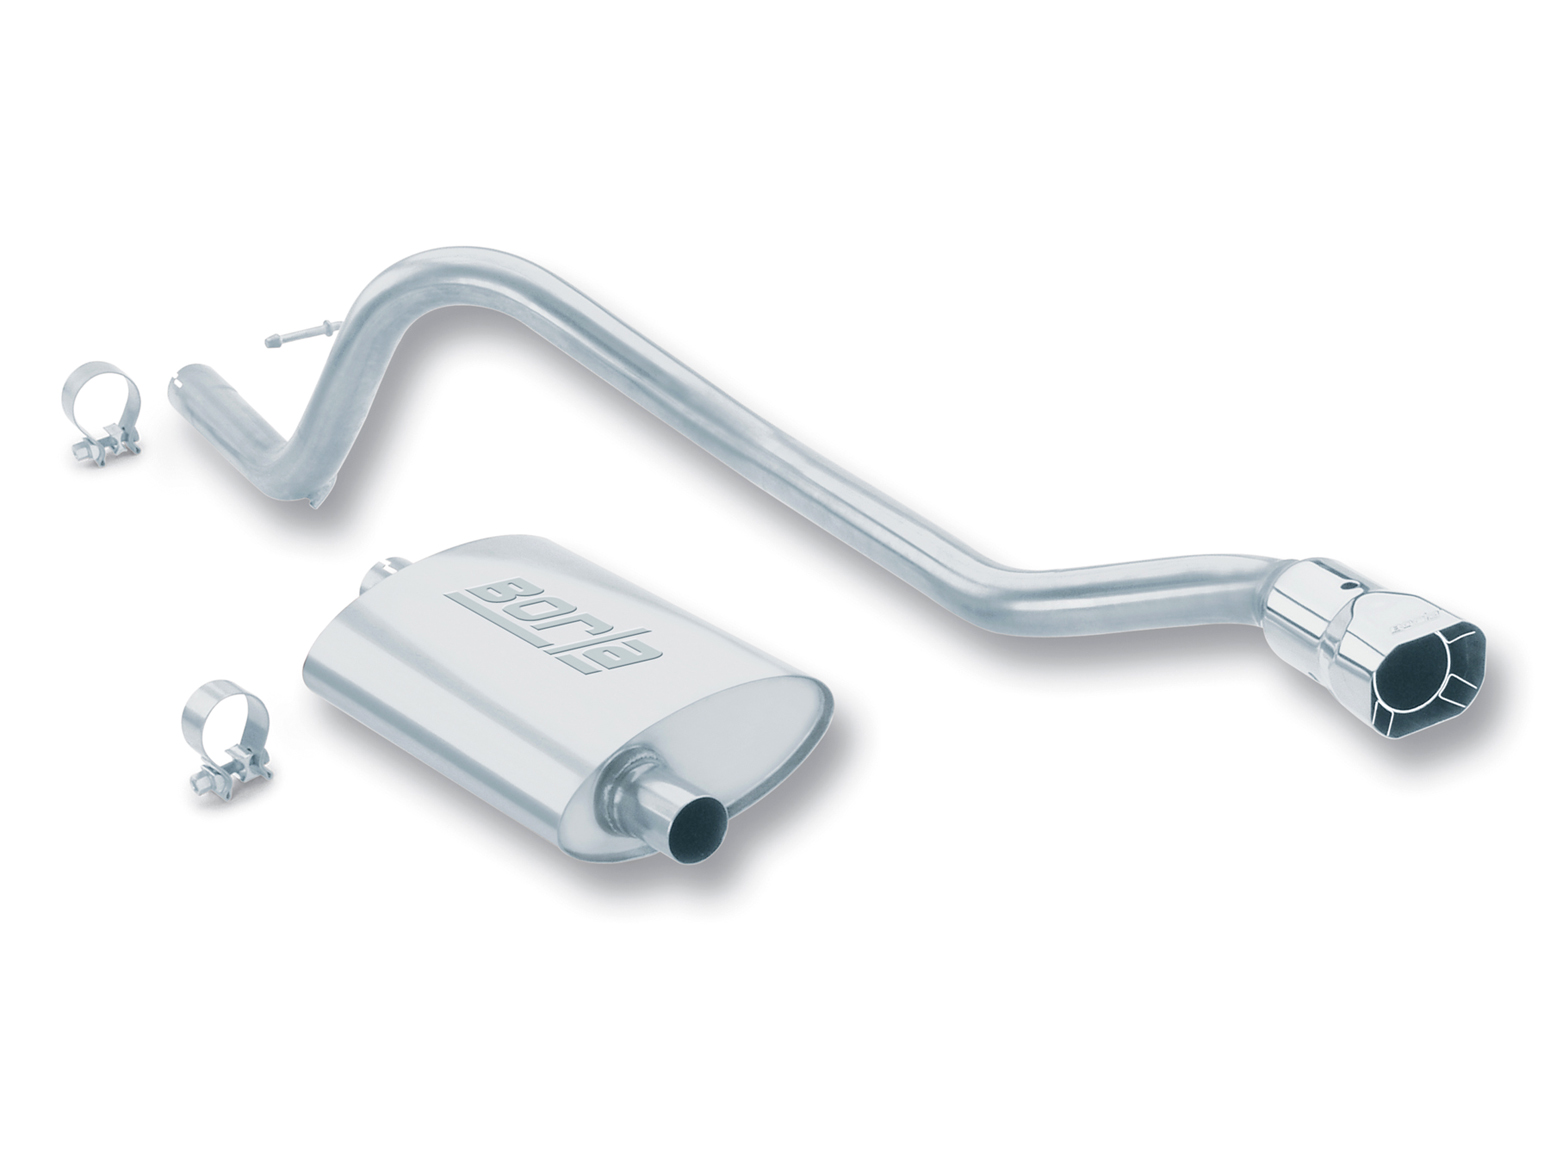 "Jeep Cherokee 4.0l 6cyl 1993-1996 Borla 2.25"", 2"" Cat-Back Exhaust System - Single Square Angle-Cut Intercooled Tips"